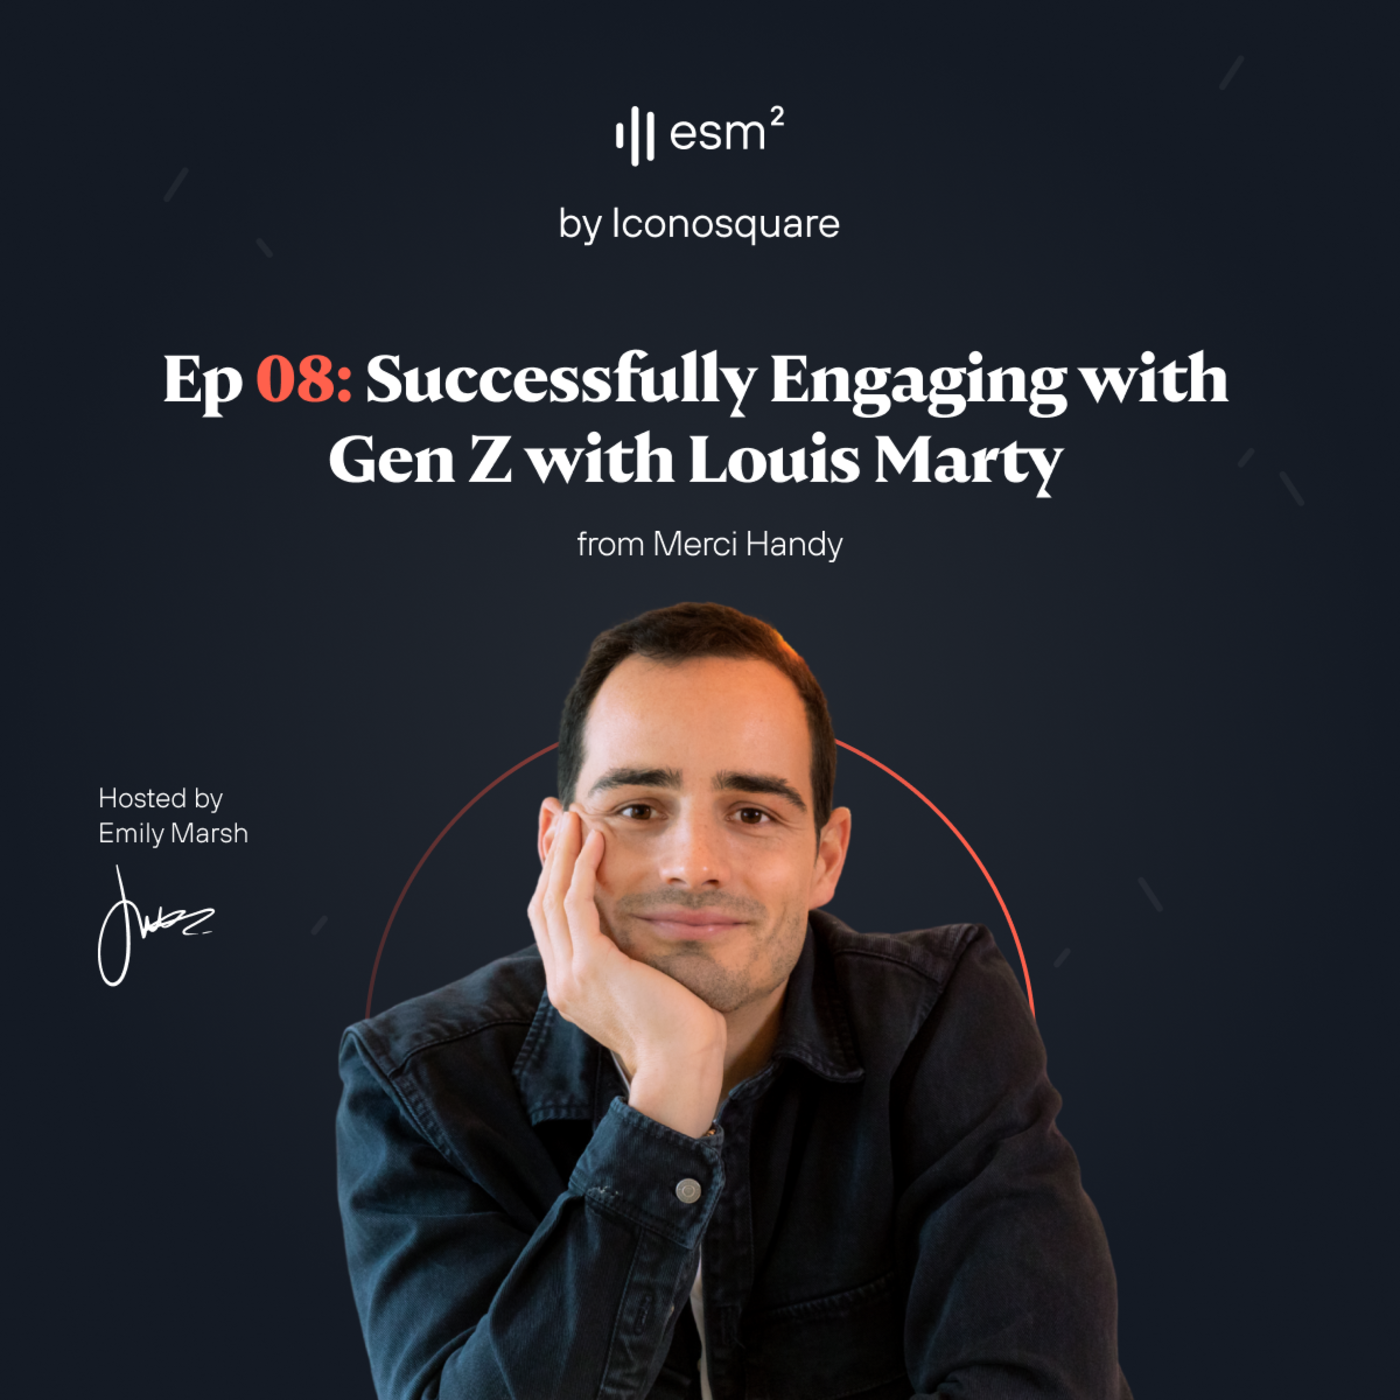 """""""Successfully Engaging with Gen Z"""" - Louis Marty from Merci Handy"""